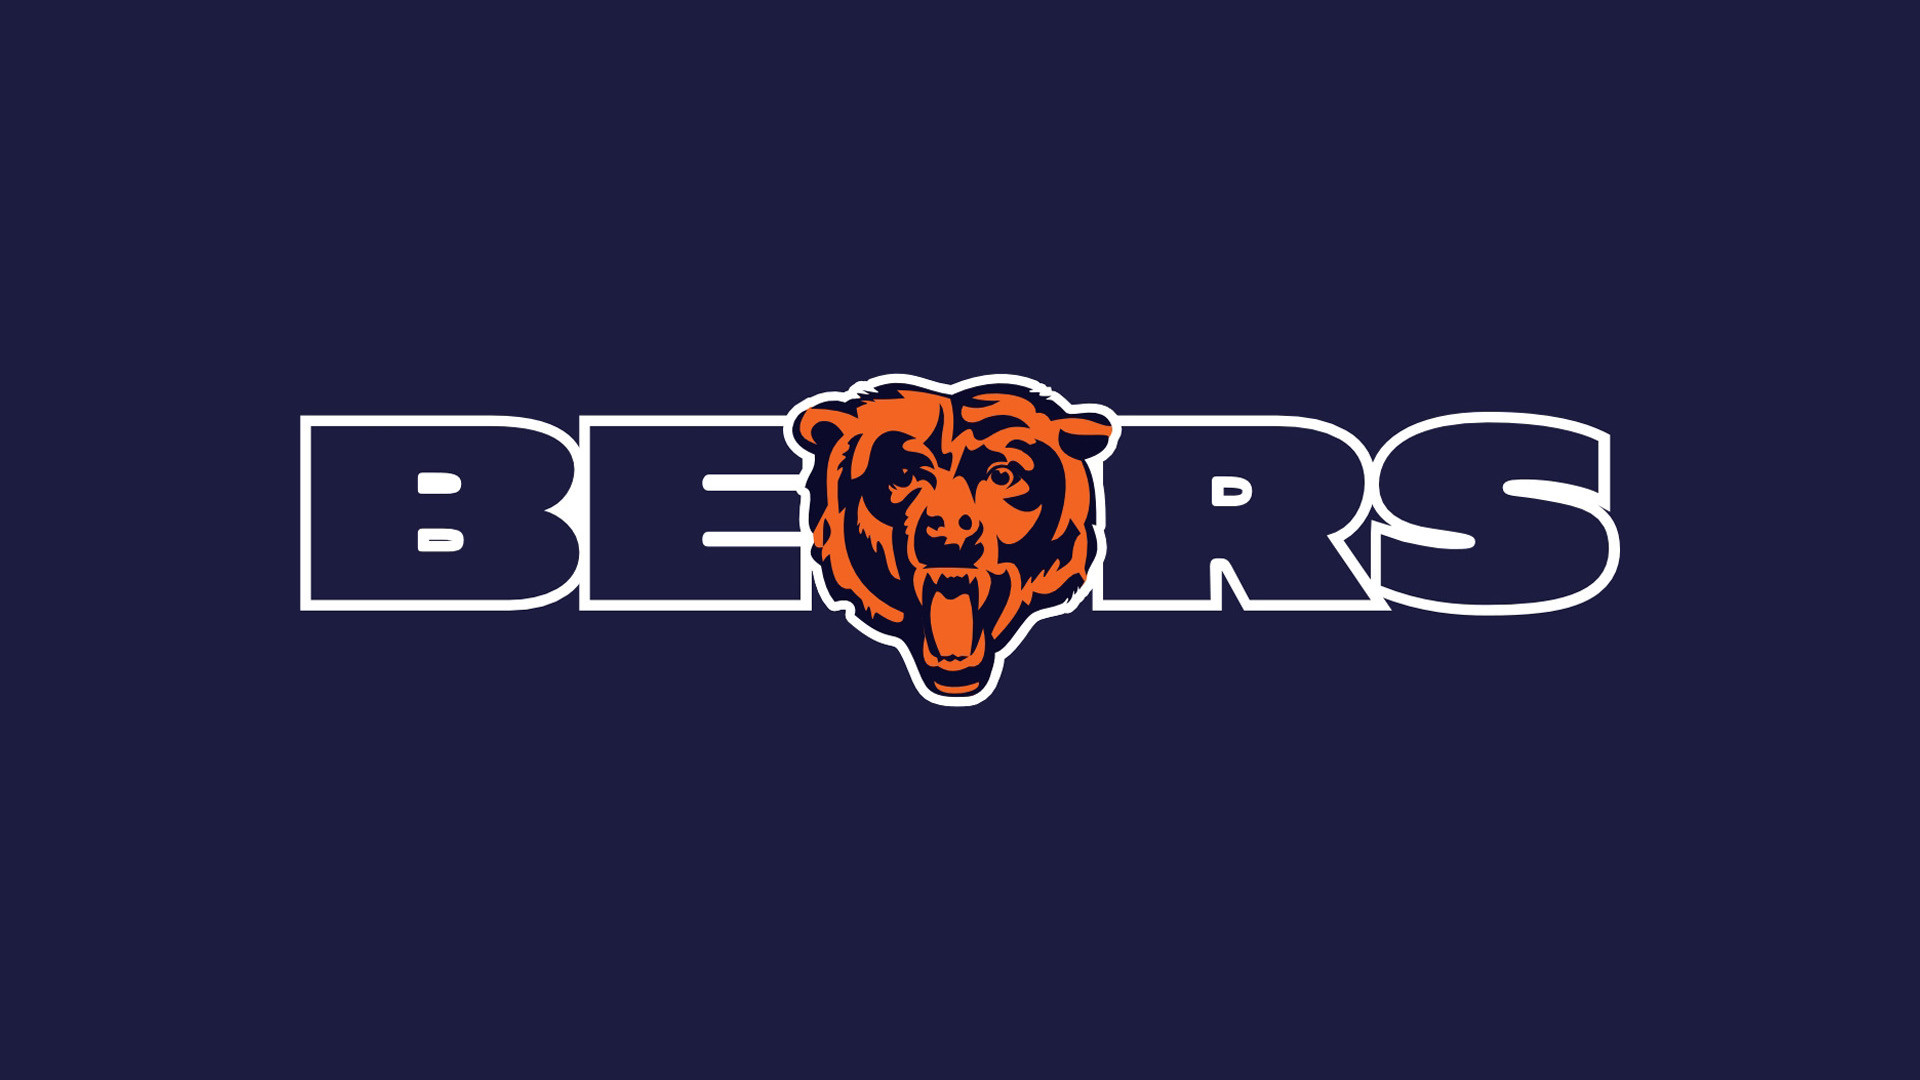 1920x1080 Chicago Bears HD desktop wallpaper | Chicago Bears wallpapers